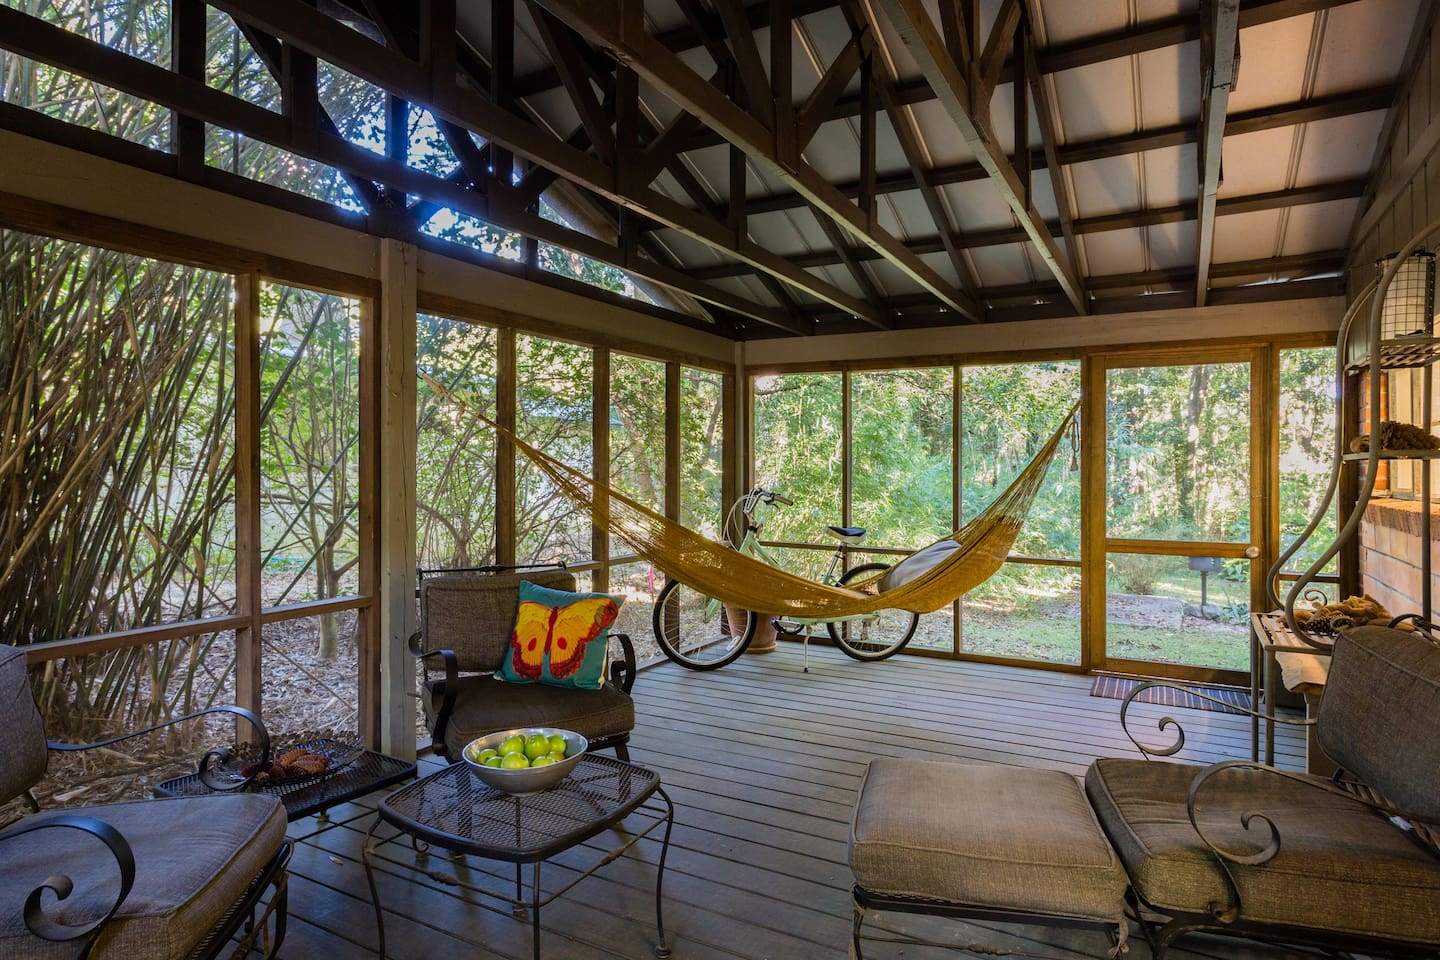 Screened porch and hammock off Living Room